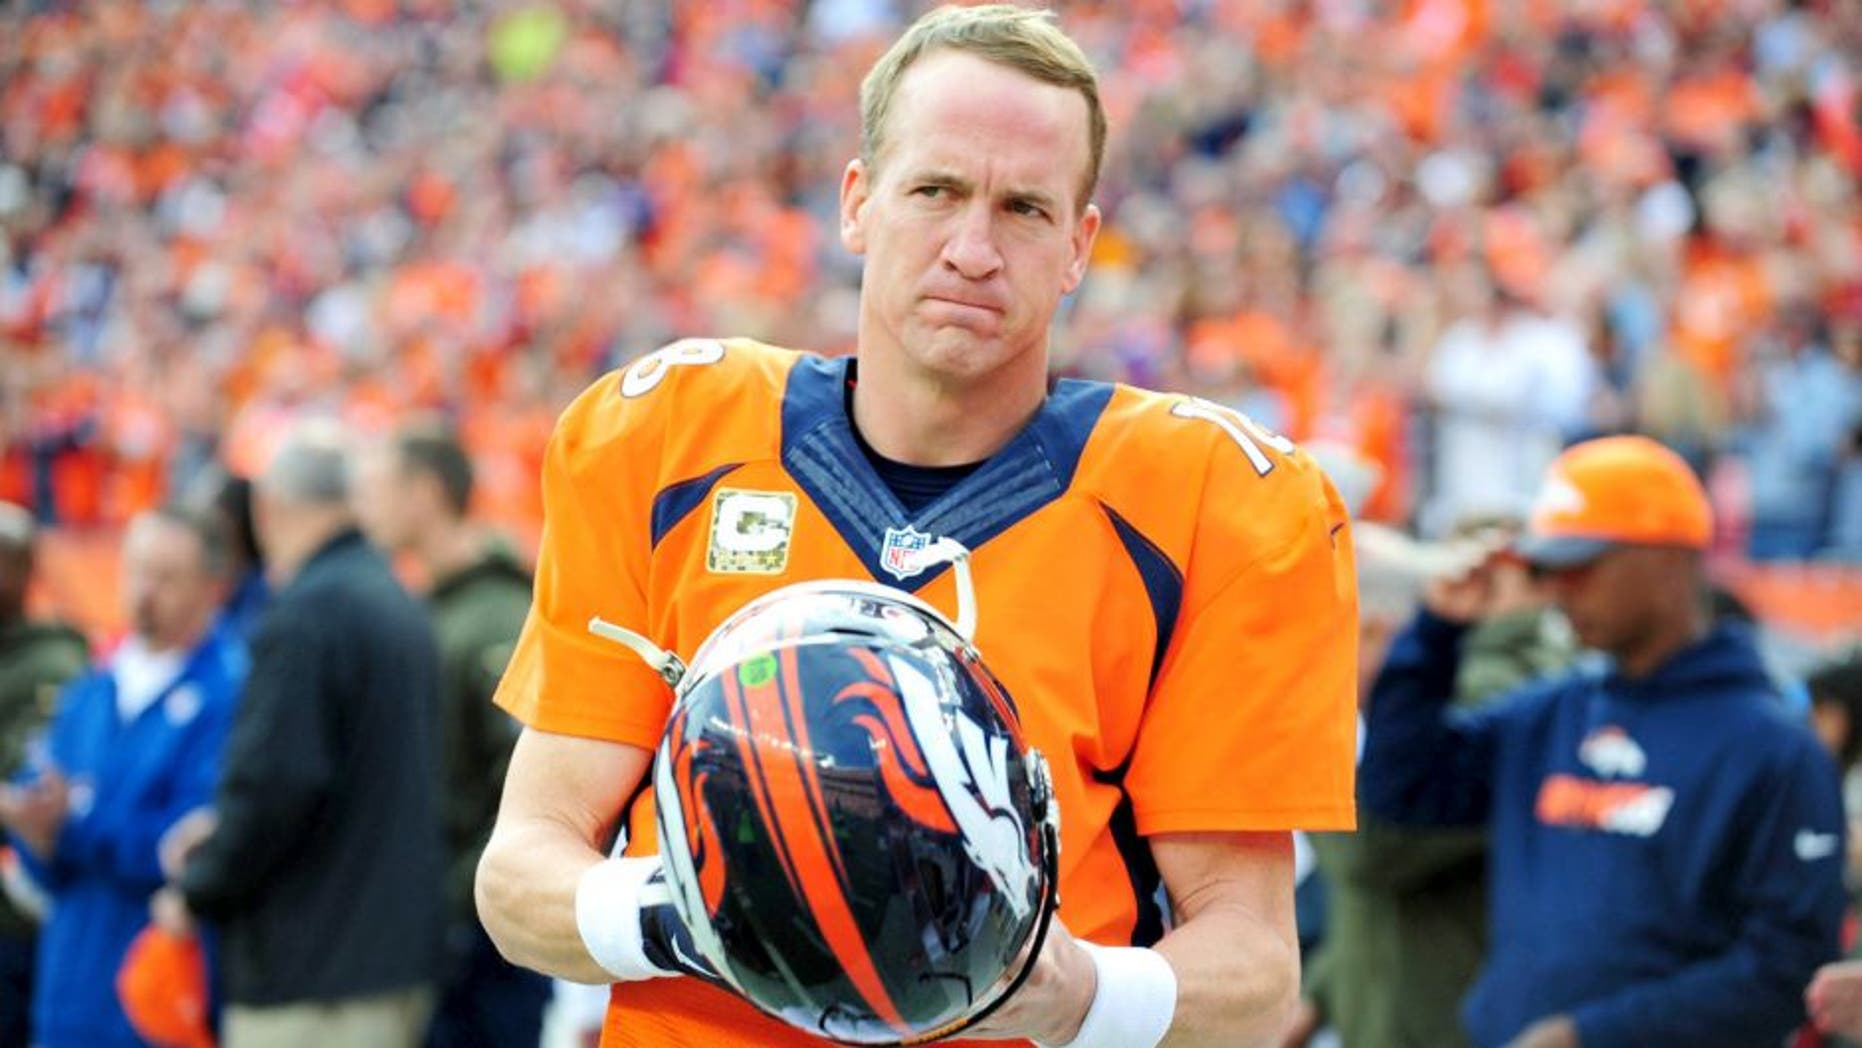 Nov 15, 2015; Denver, CO, USA; Denver Broncos quarterback Peyton Manning (18) before the game against the Kansas City Chiefs at Sports Authority Field at Mile High. Mandatory Credit: Ron Chenoy-USA TODAY Sports